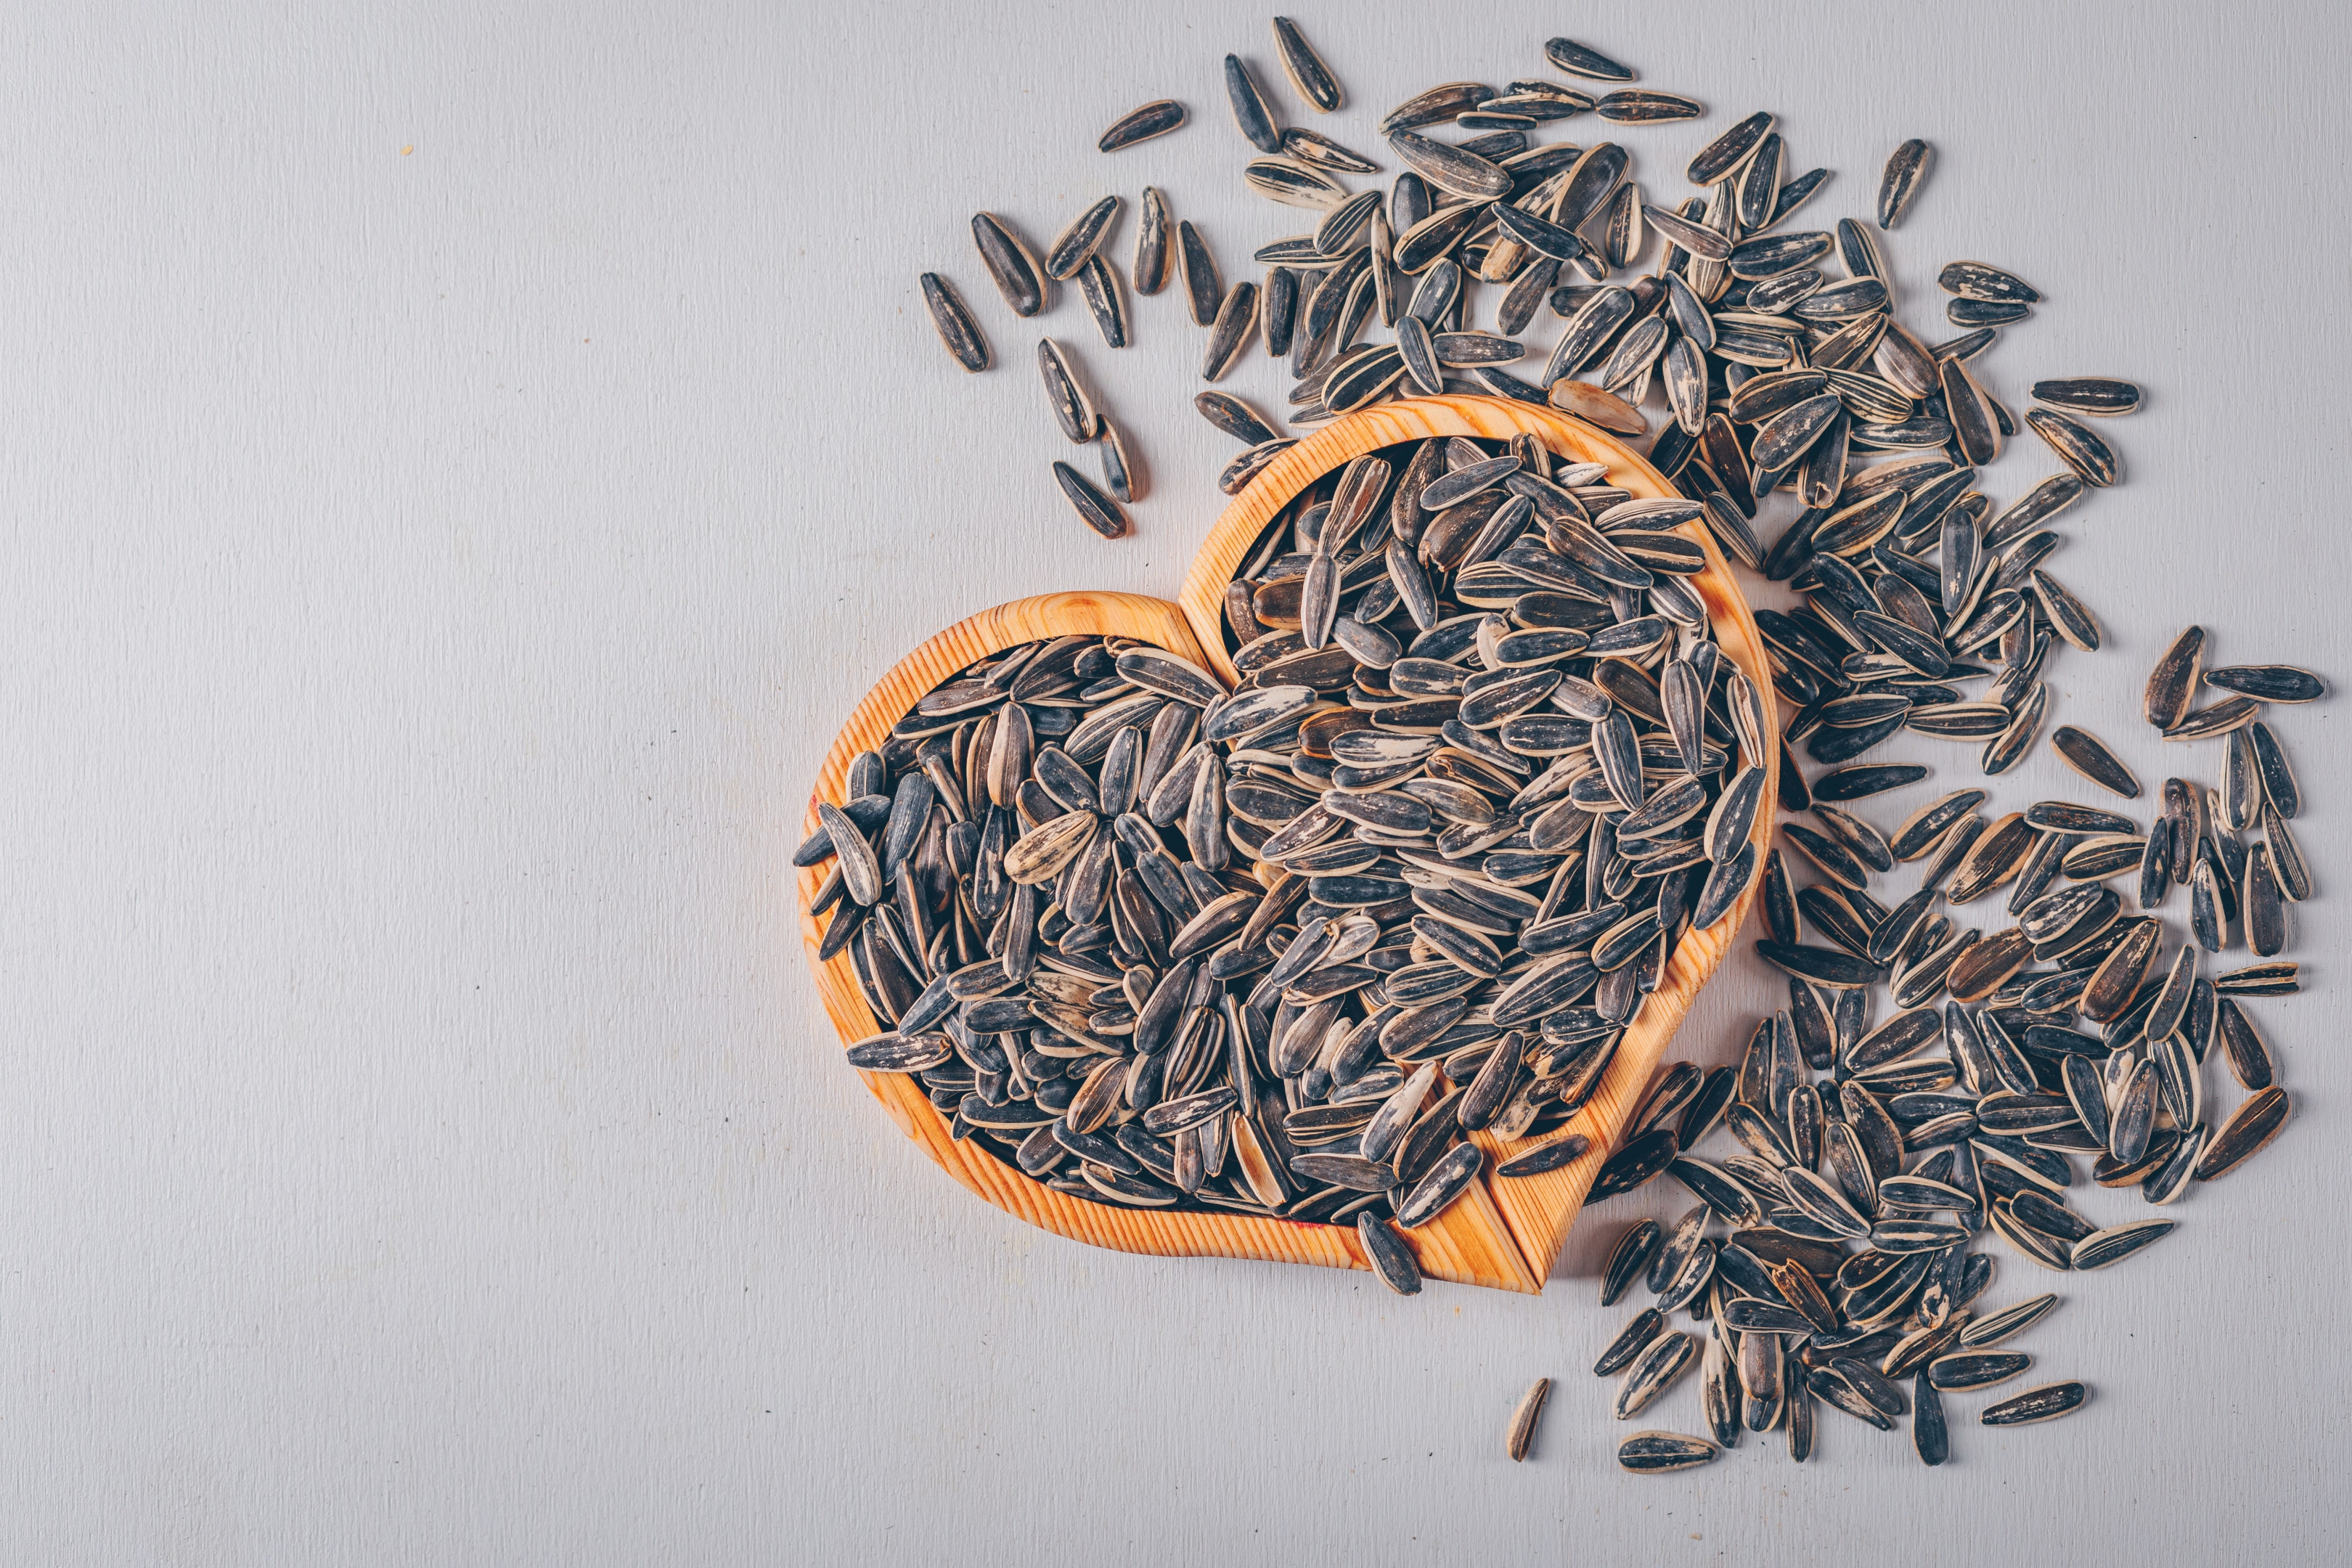 Black sunflower seeds on heart shaped board on gray background